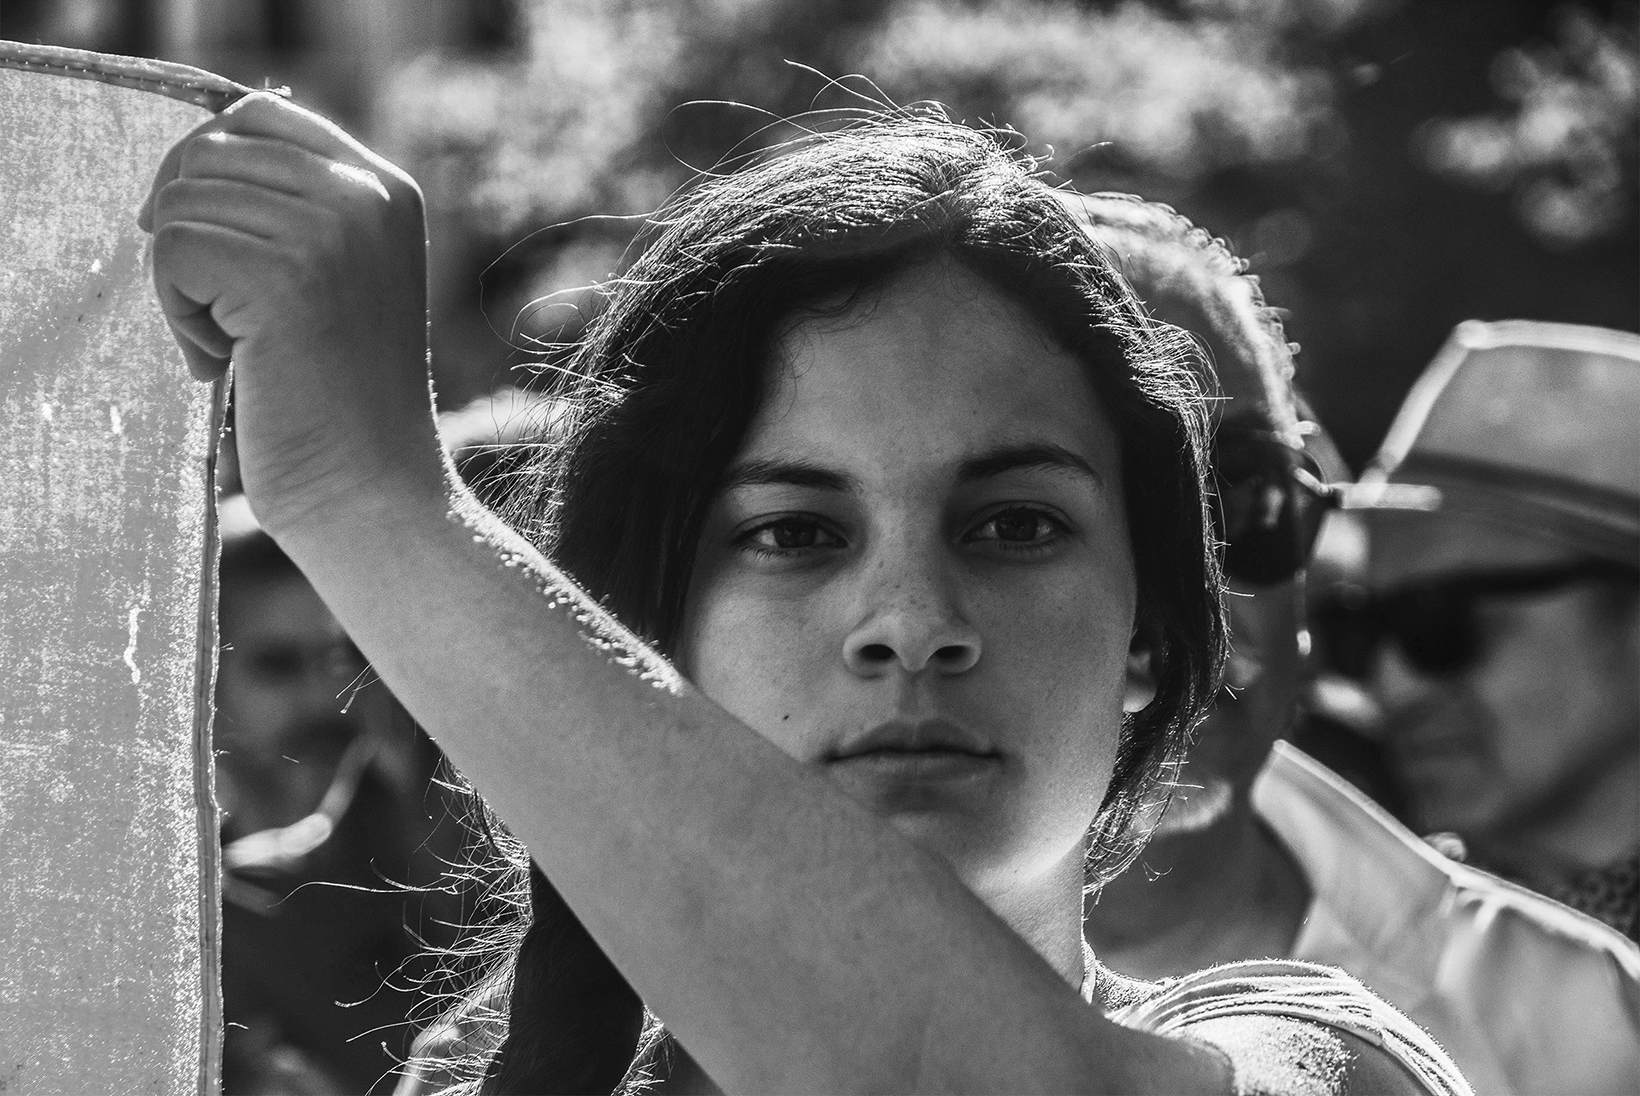 A girl takes part in a Roma community march in Madrid, Spain, May 2019.